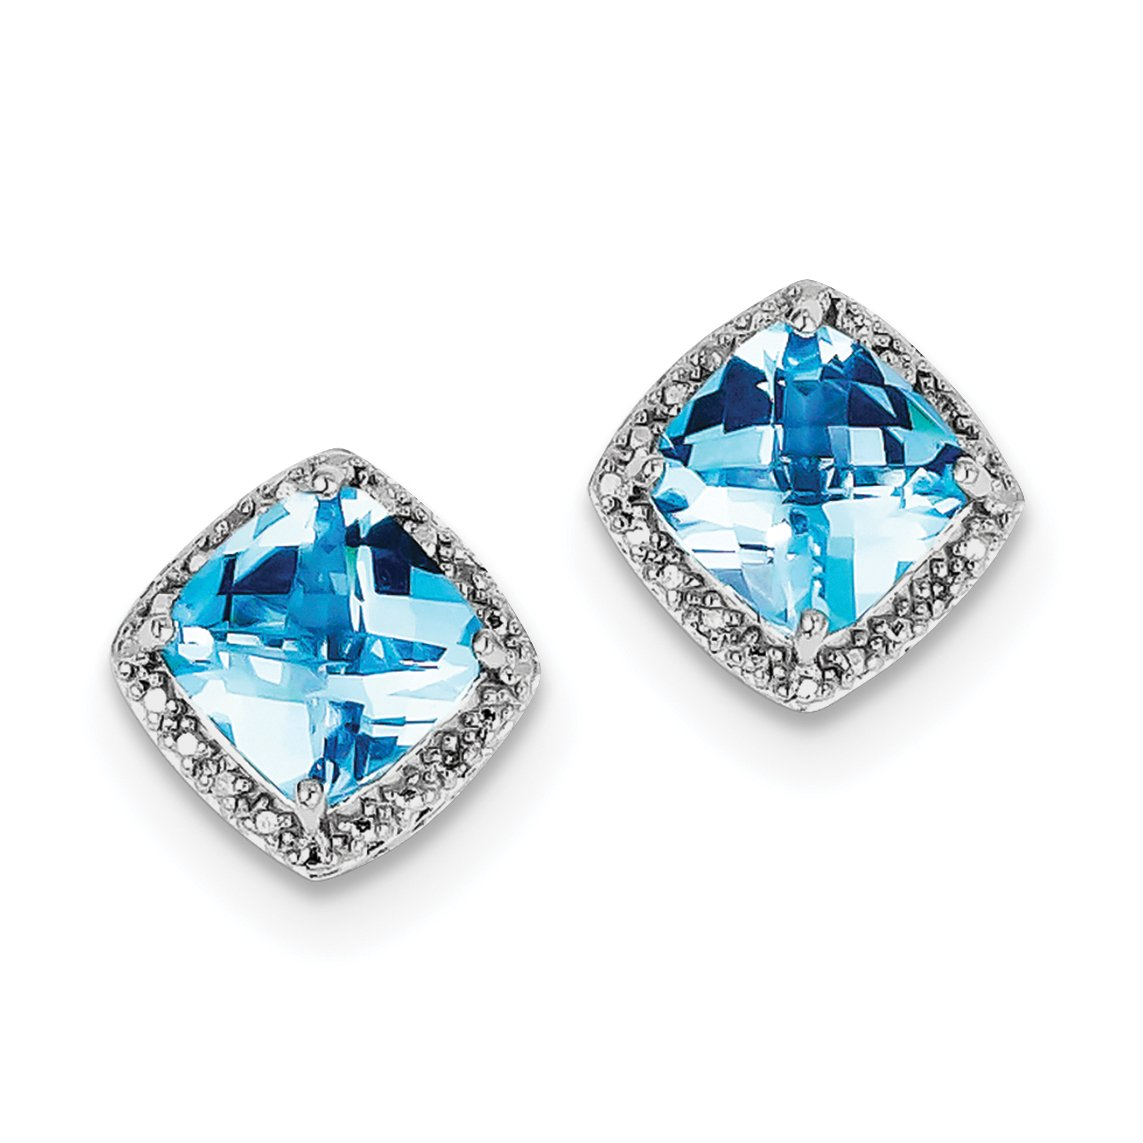 ICE CARATS 925 Sterling Silver Blue Topaz Diamond Post Stud Ball Button Earrings Fine Jewelry Gift Set For Women Heart